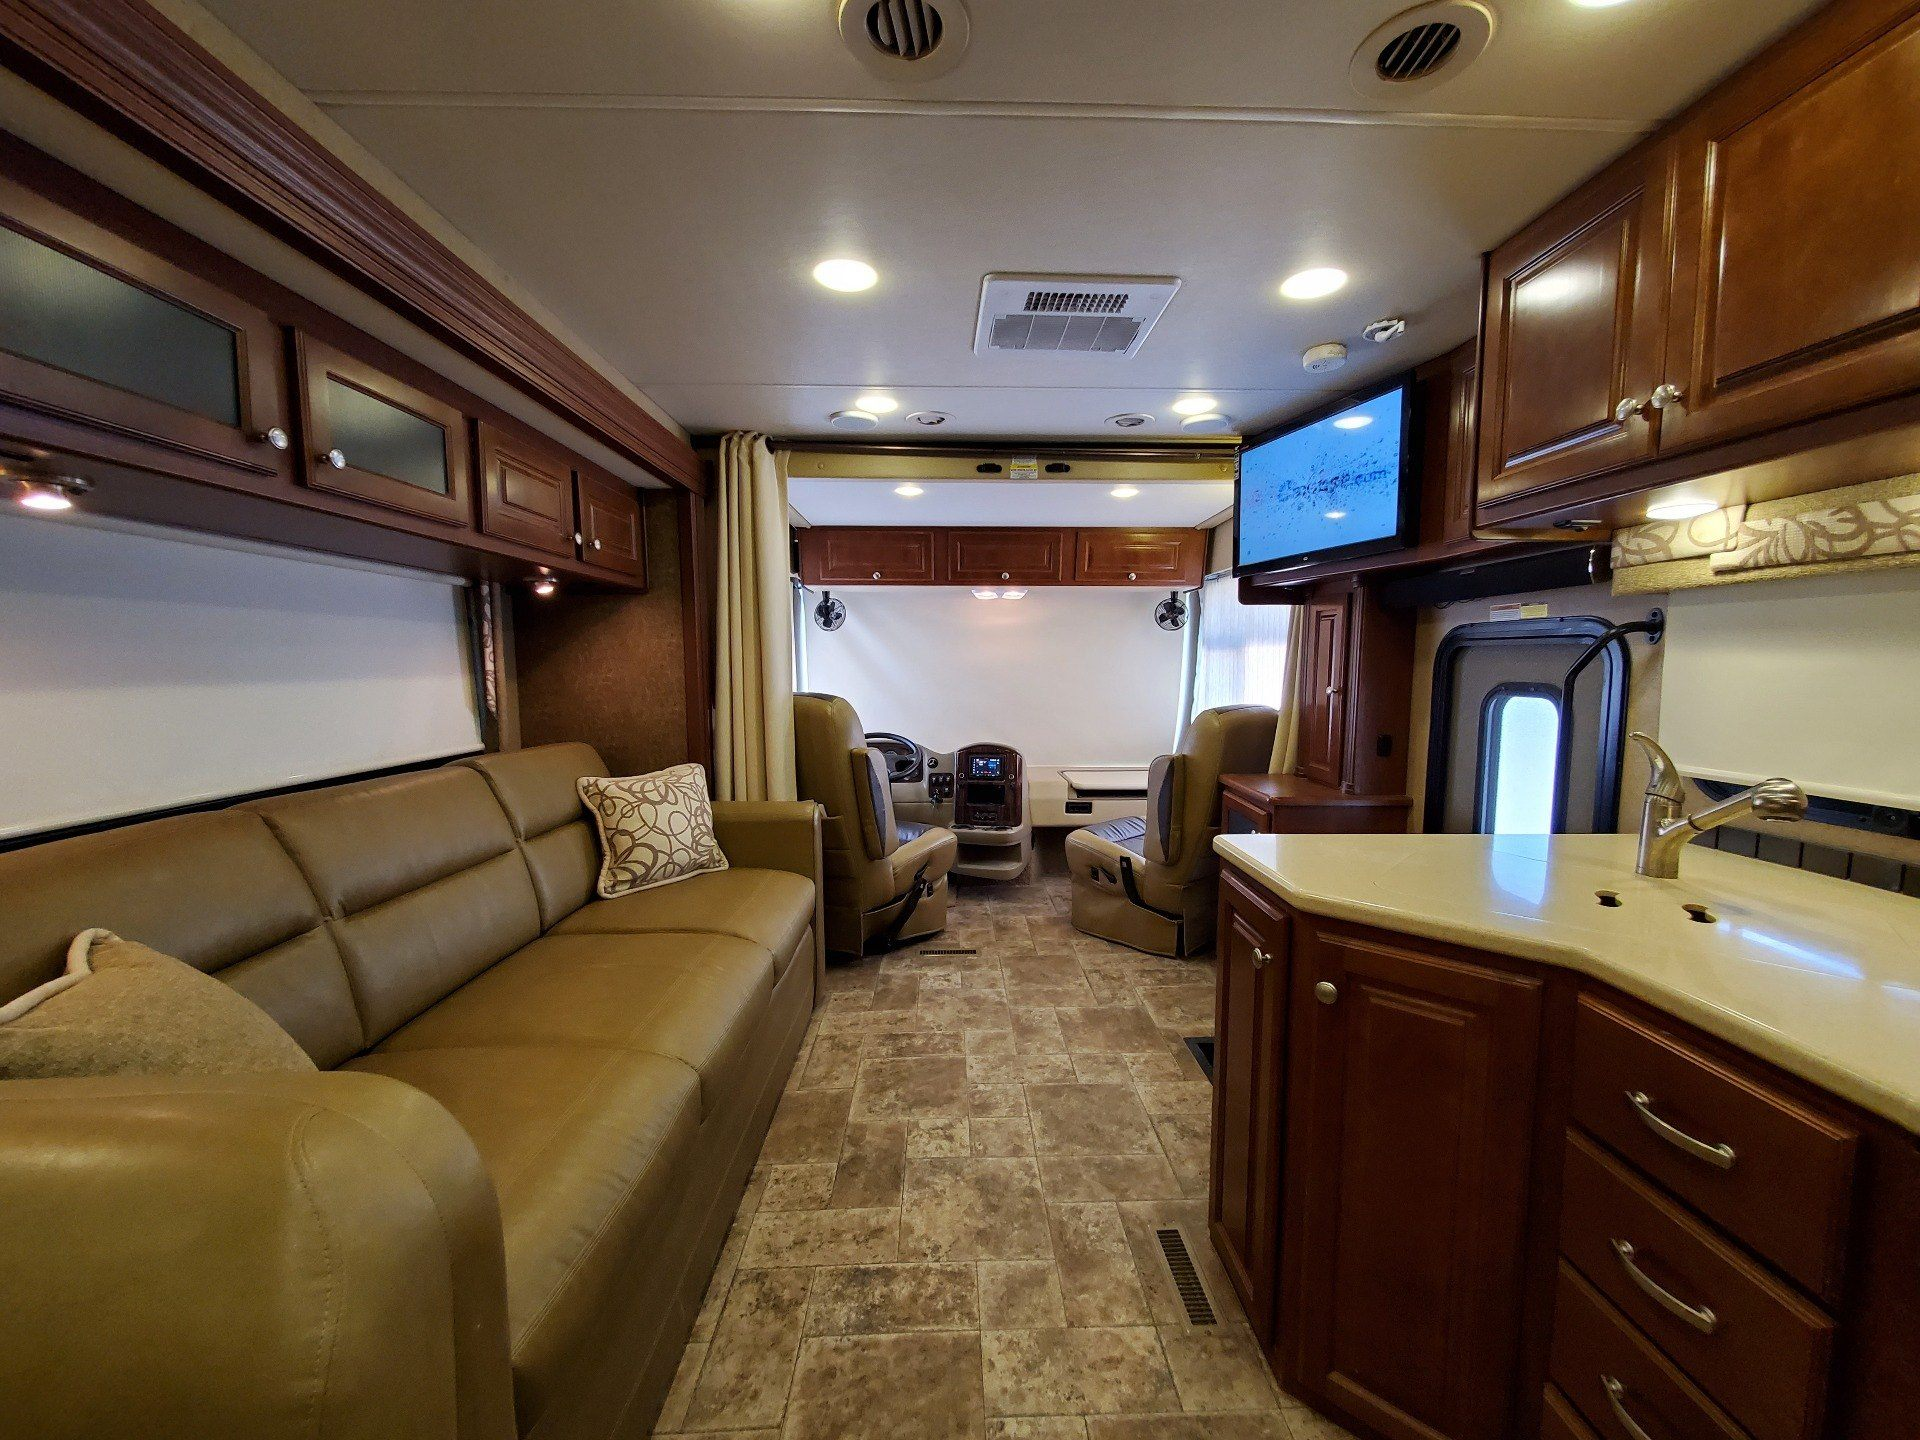 2014 Thor Palazzo 36.1 in Wolfforth, Texas - Photo 3